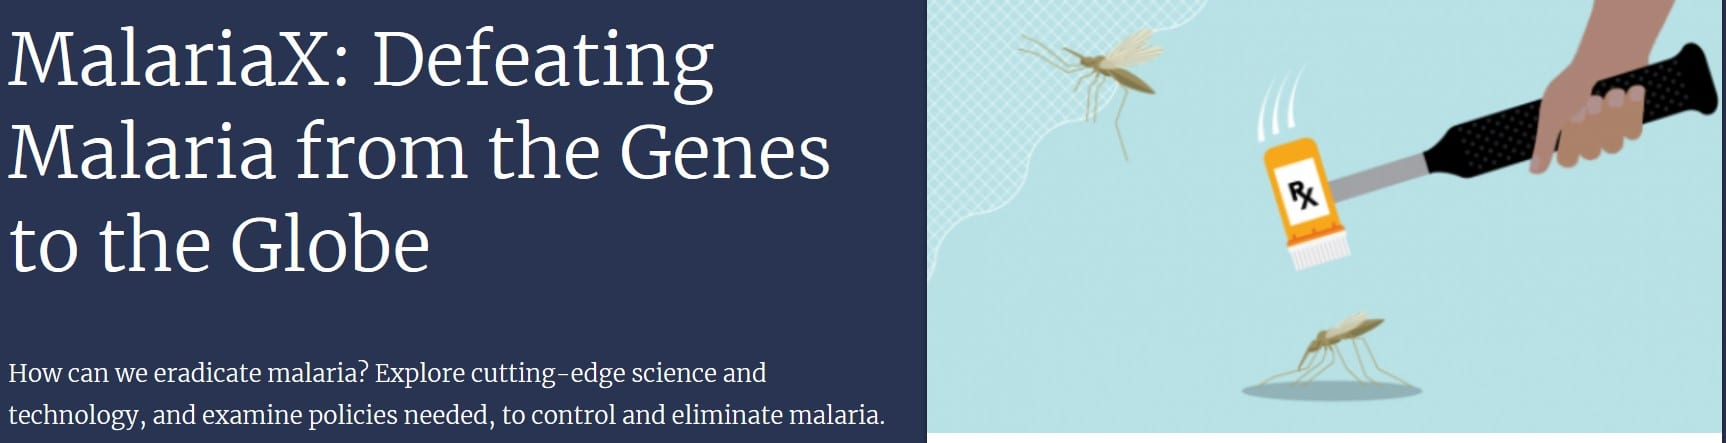 MalariaX - Defeating Malaria from the Genes to the Globe